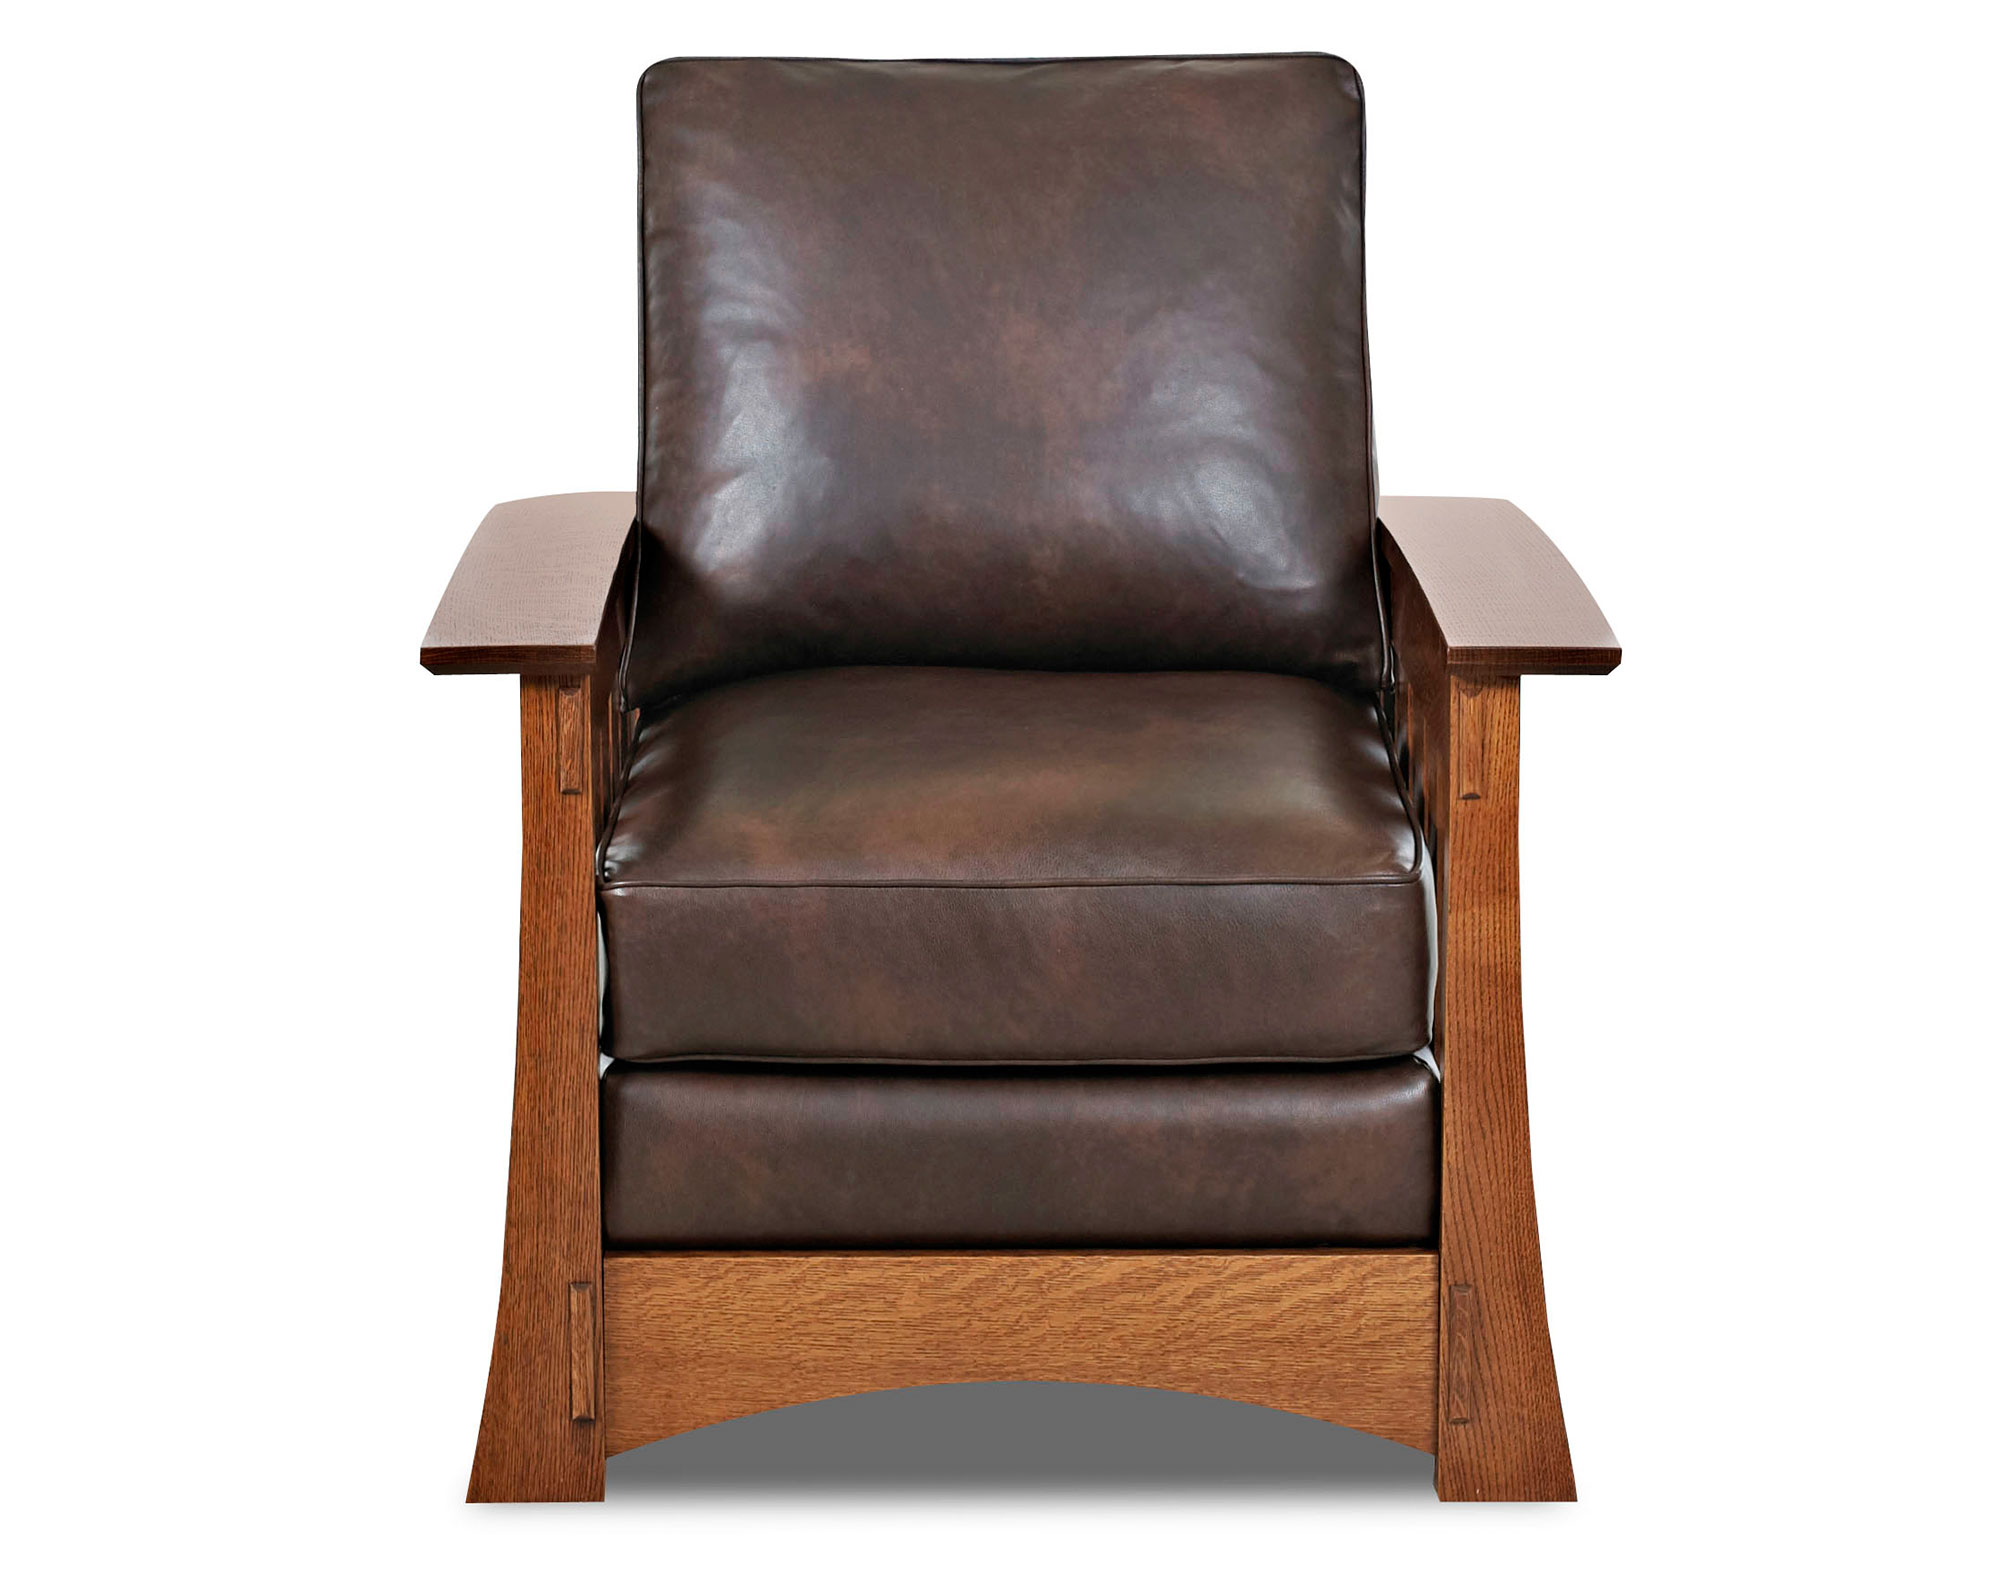 Highlands 83 Wood Trimmed Mission Leather Sofas And